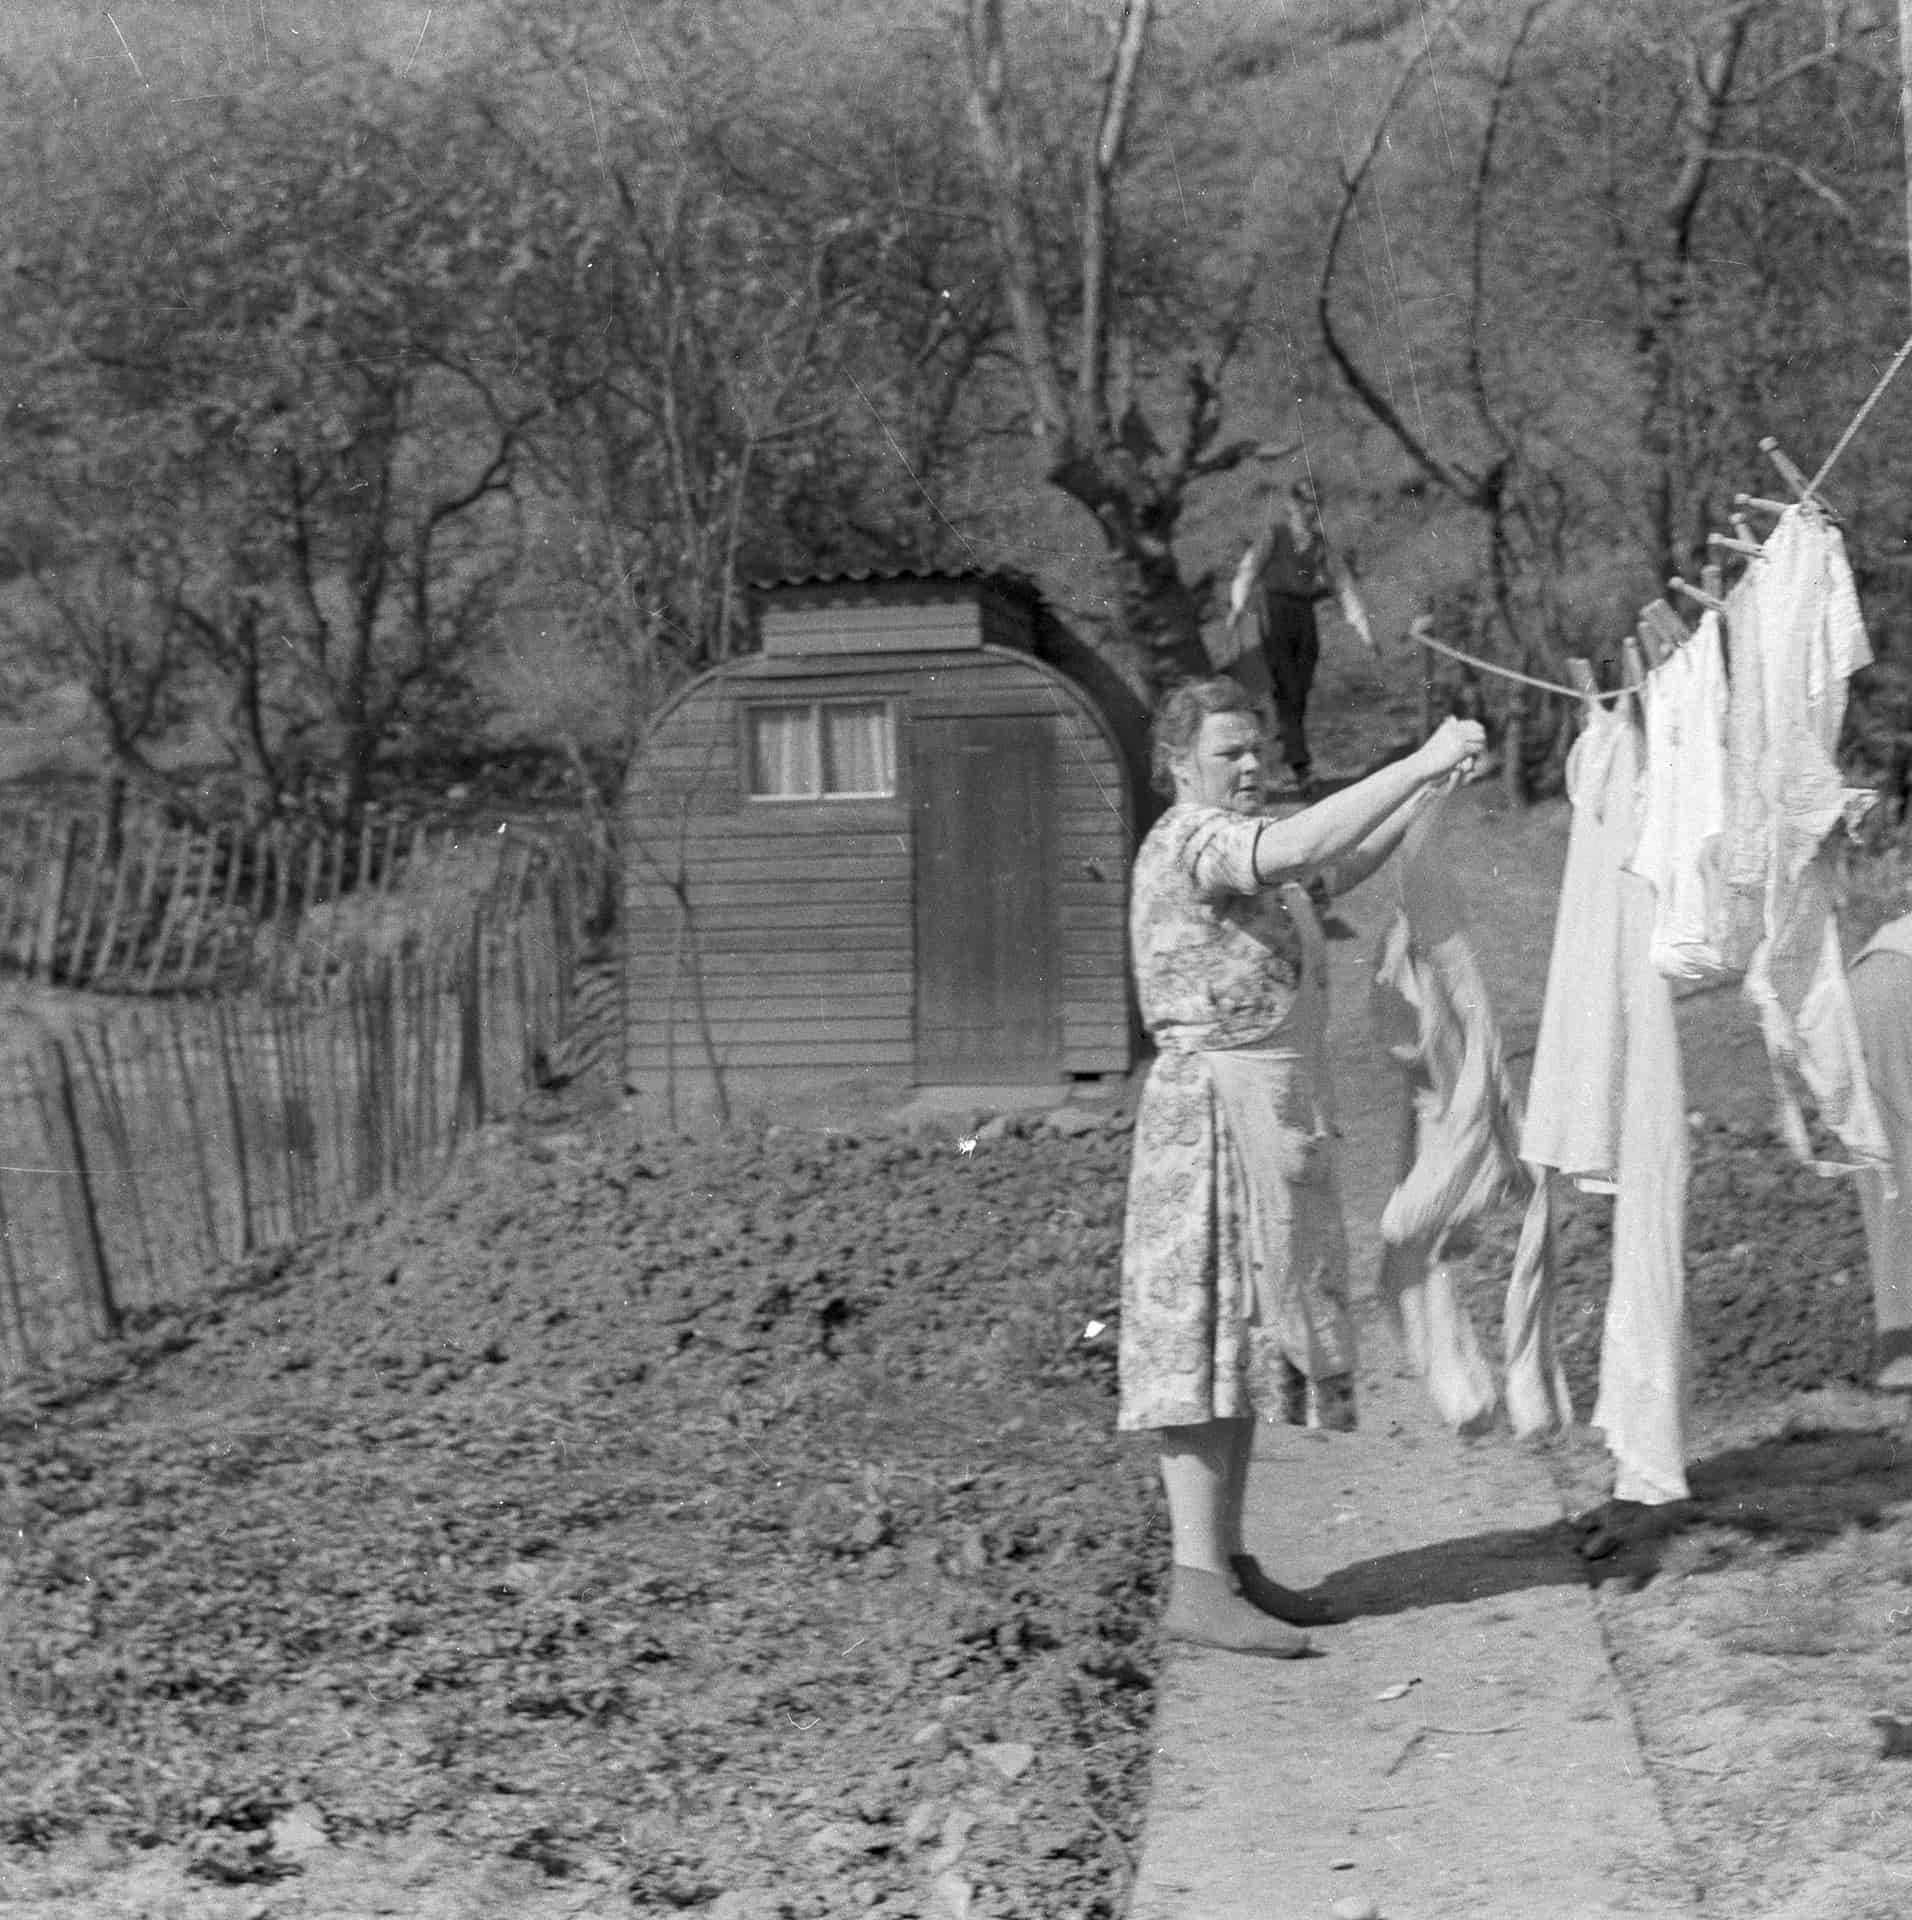 This is of my mum pegging out the washing. In the background there is a shed made up after the war from the old Anderson air raid shelter. The Anderson air raid shelter was narrower than that, it's been extended a bit and dad made it into a shed, he used to keep the bikes and the motorbikes and various odds and ends.